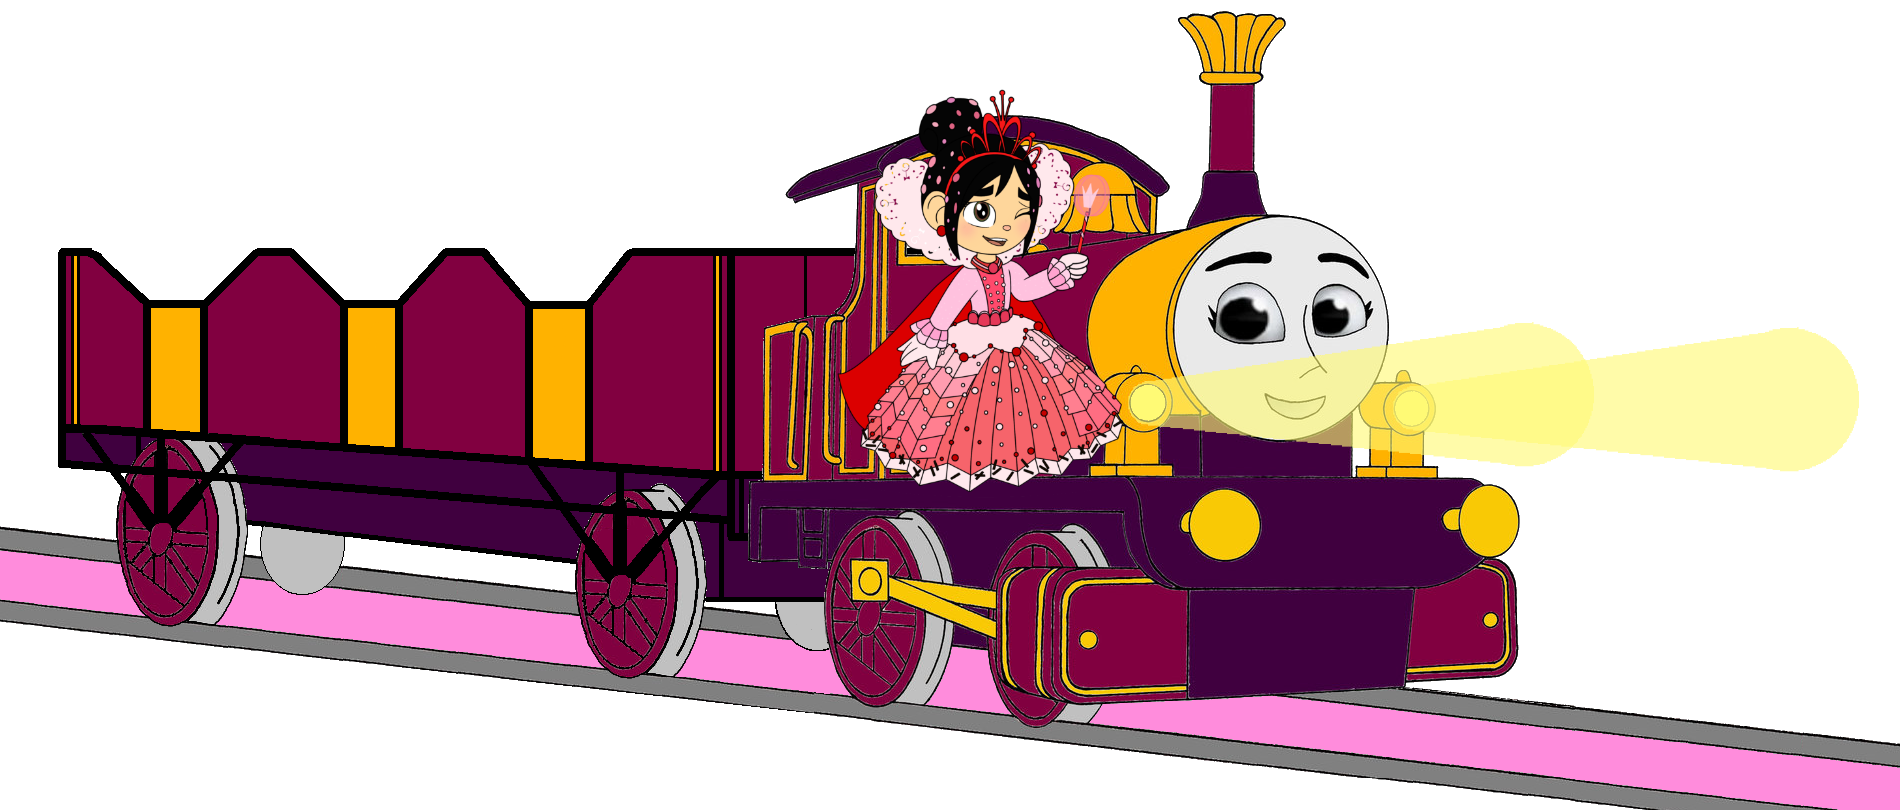 Lady with Princess Vanellope, her Open-Topped Carriage & Shining Gold Lamps